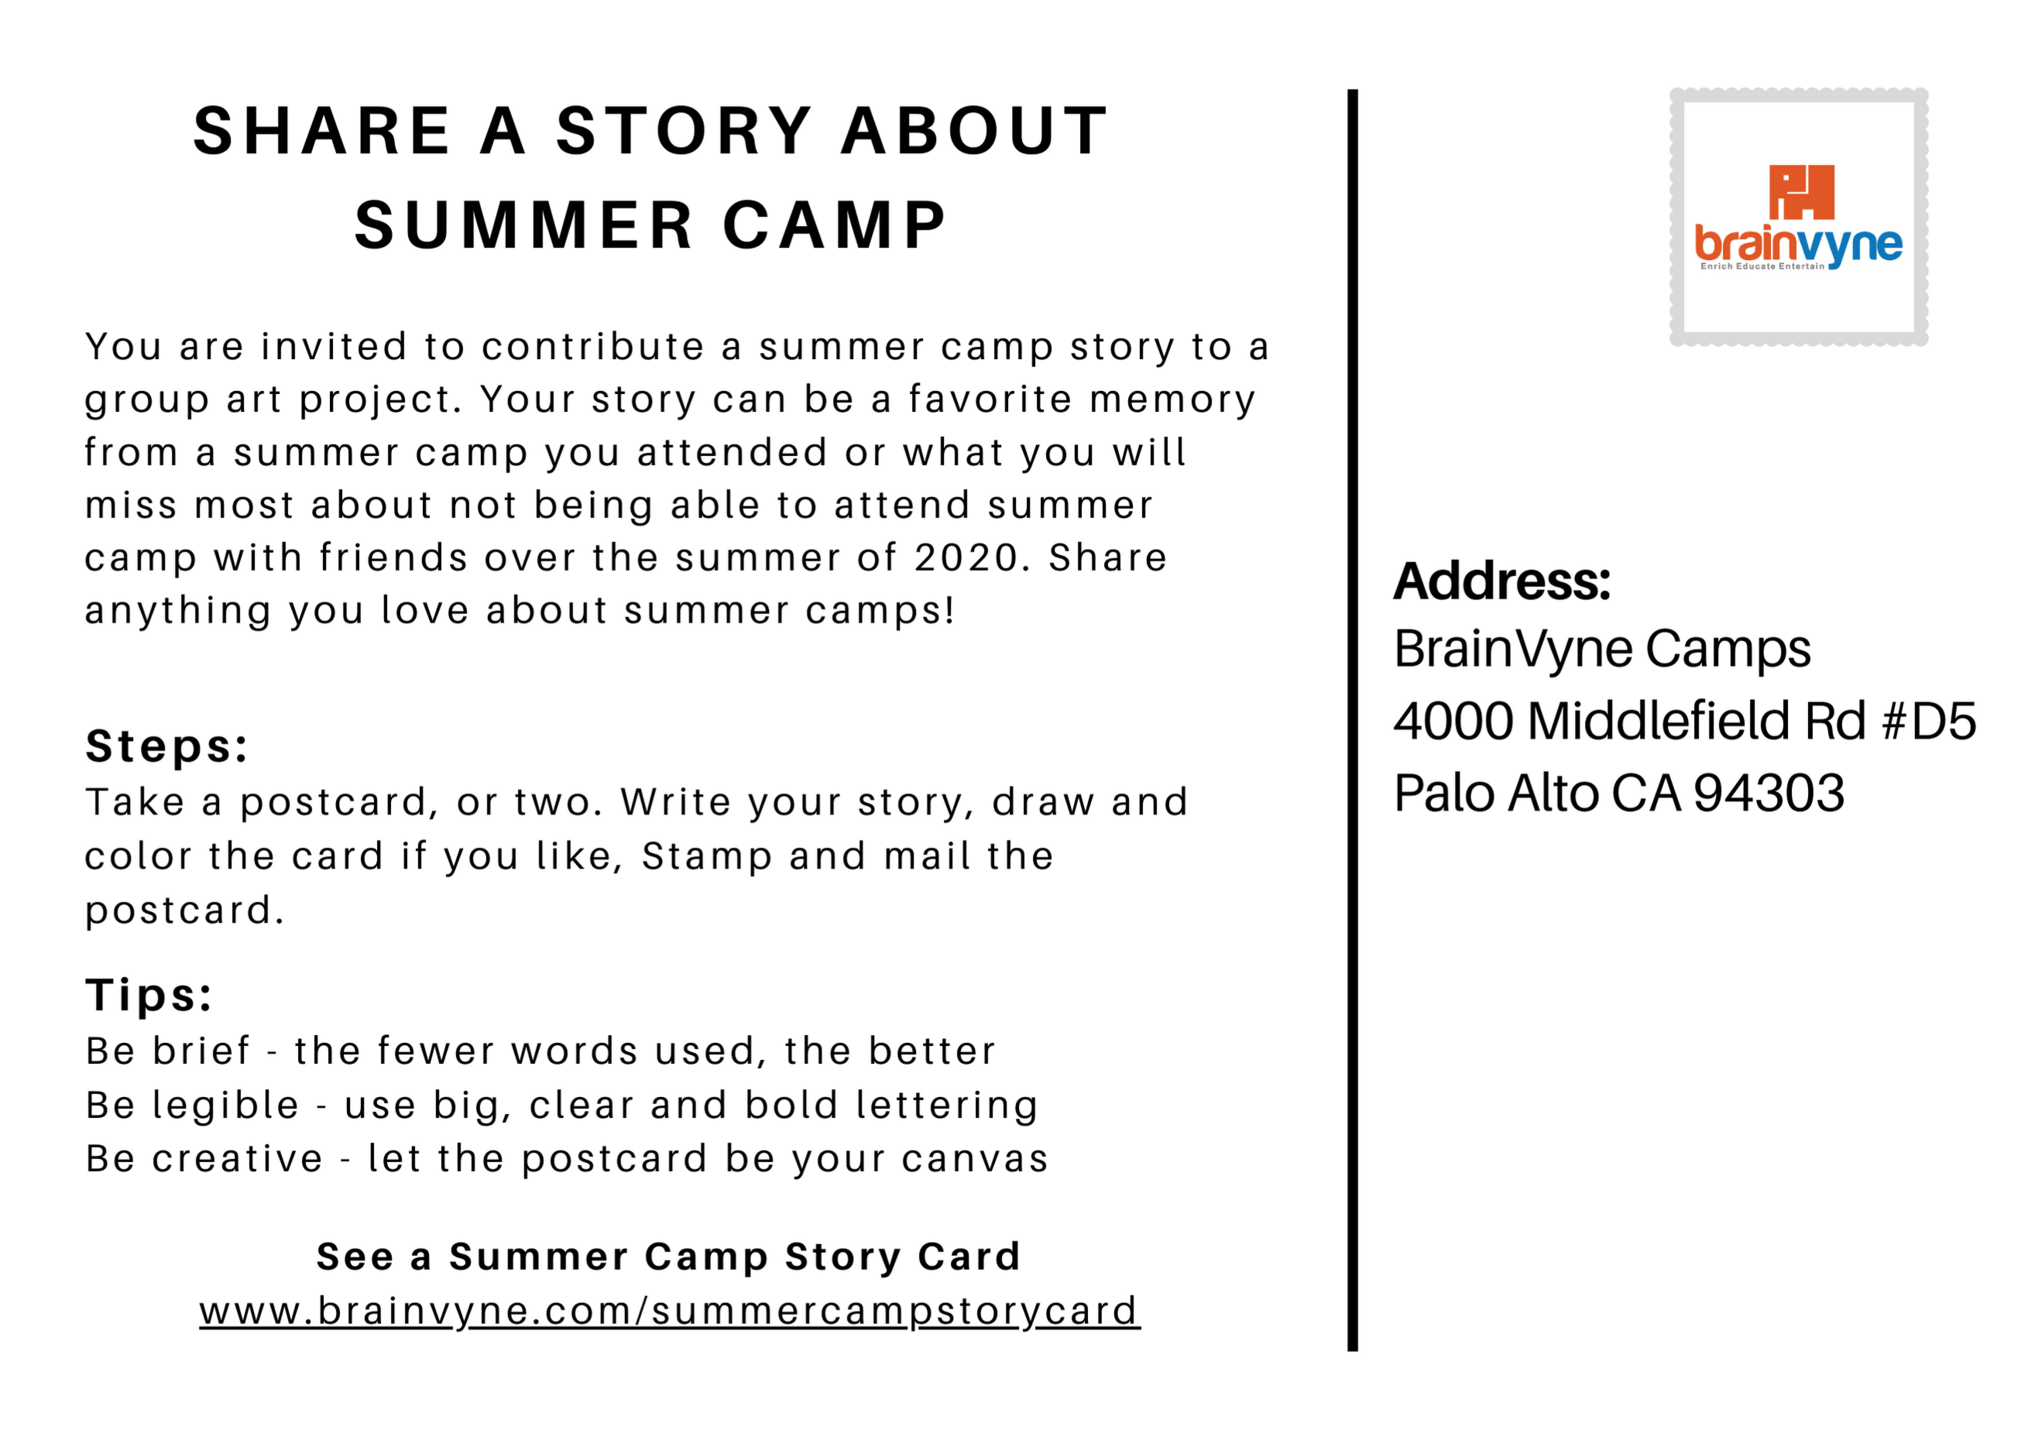 Share a Story About Summercamp Image